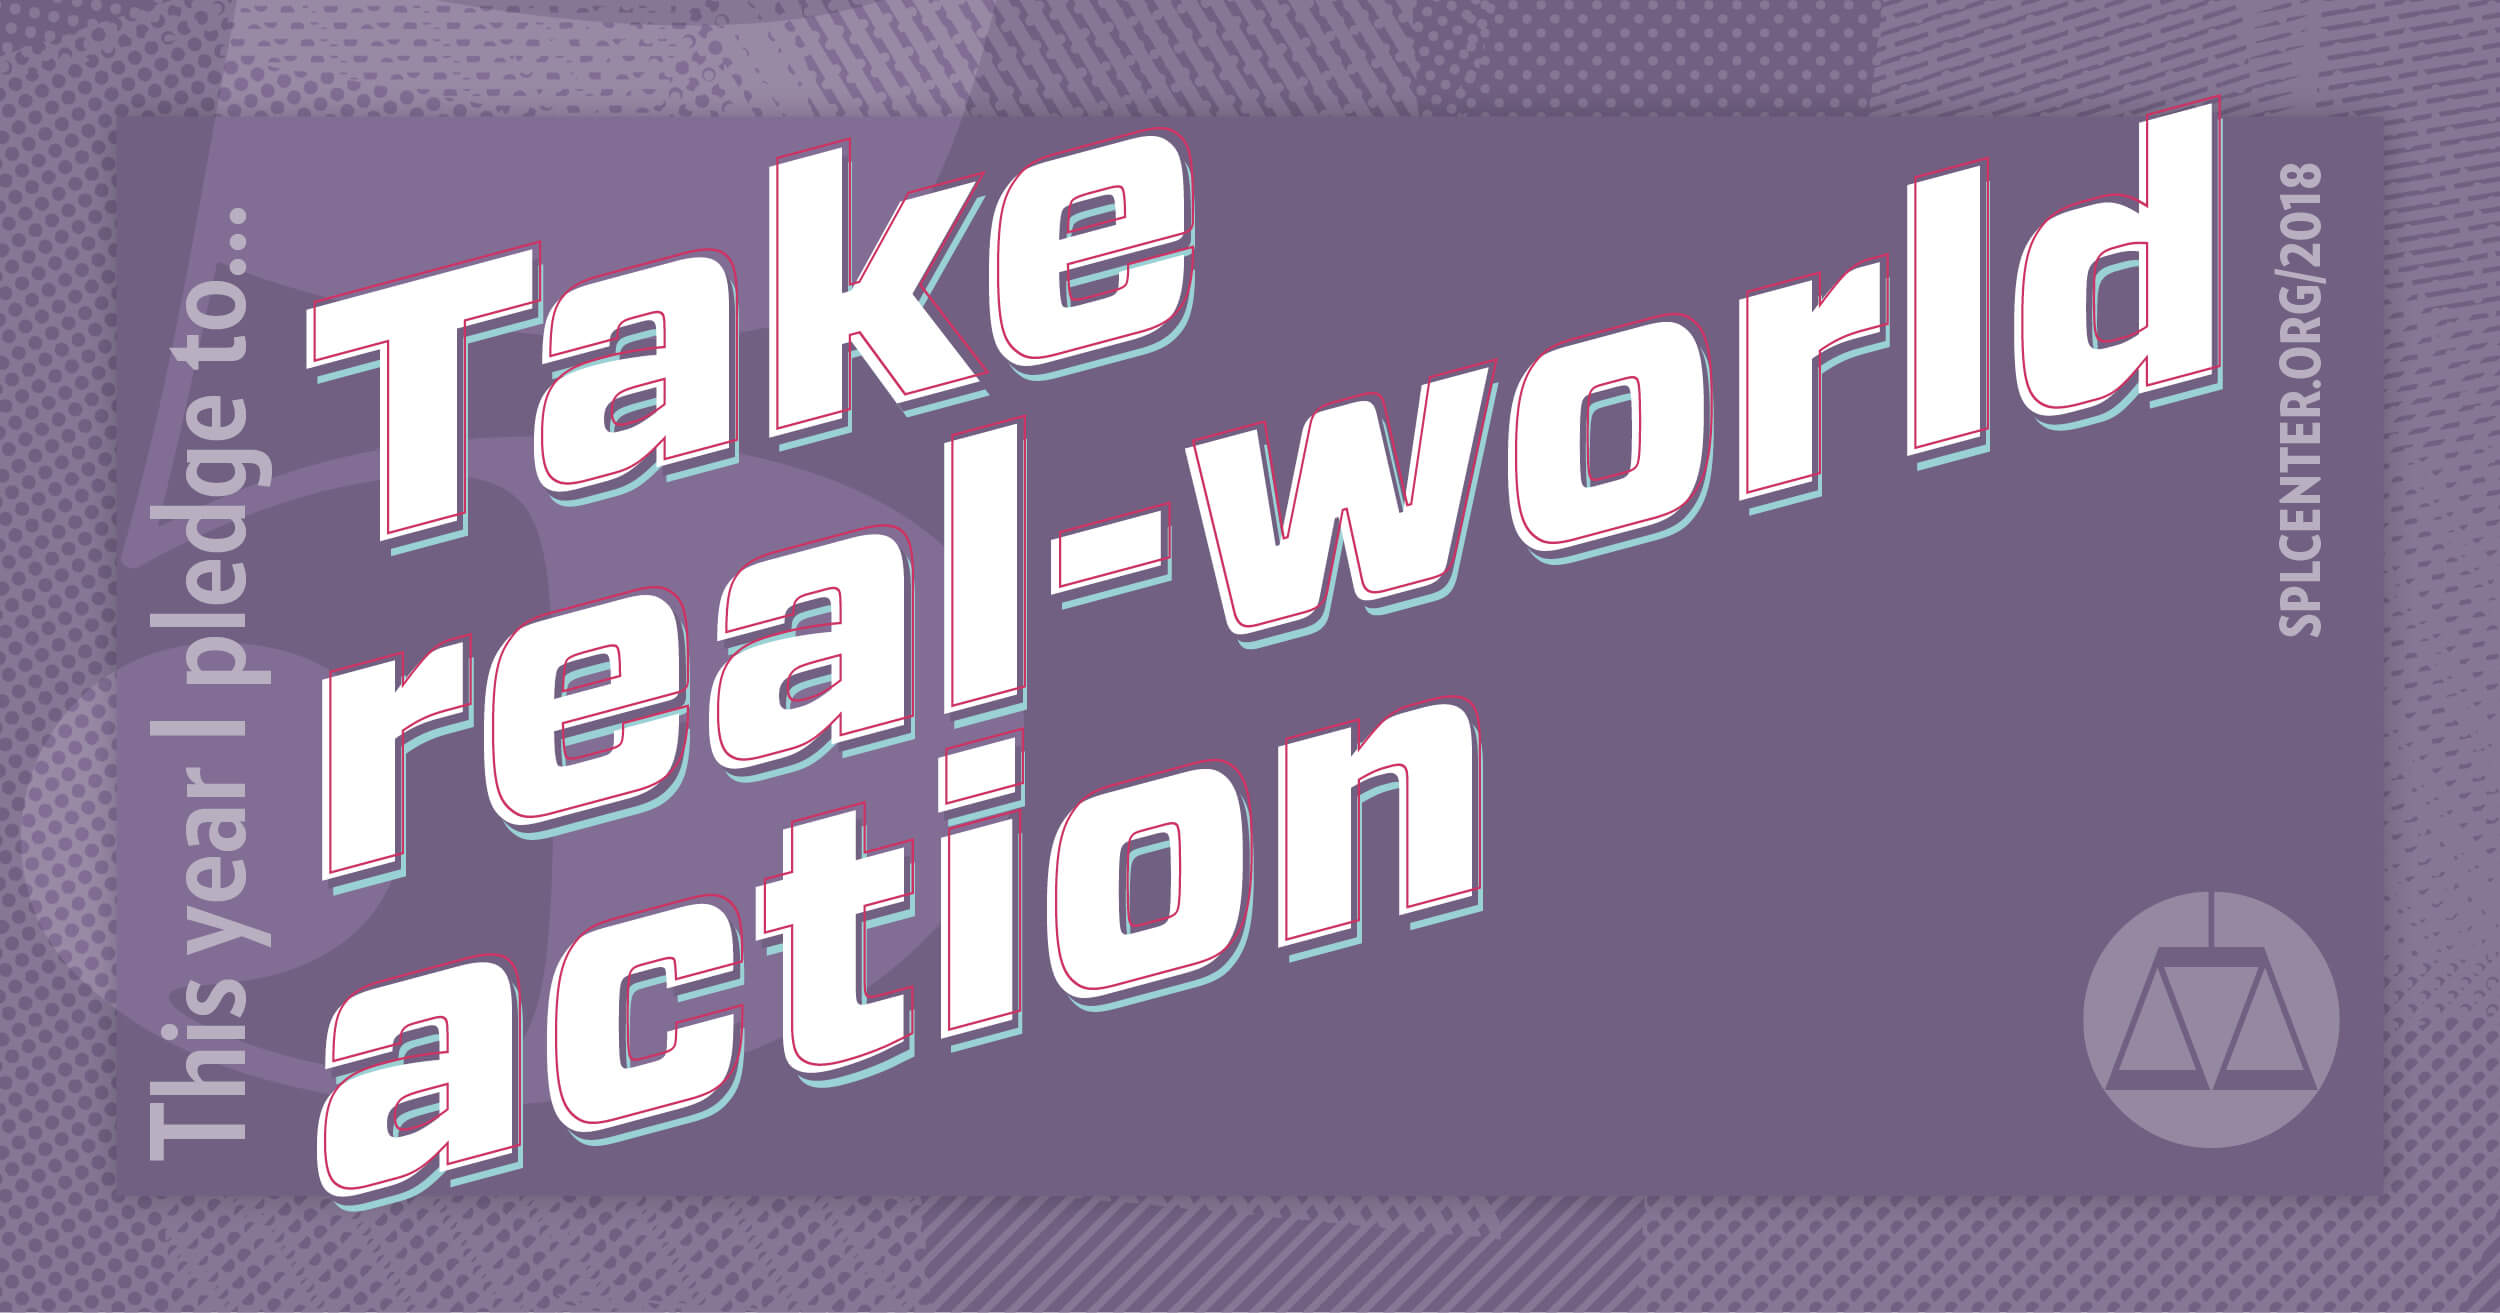 Pledge to take real world action.